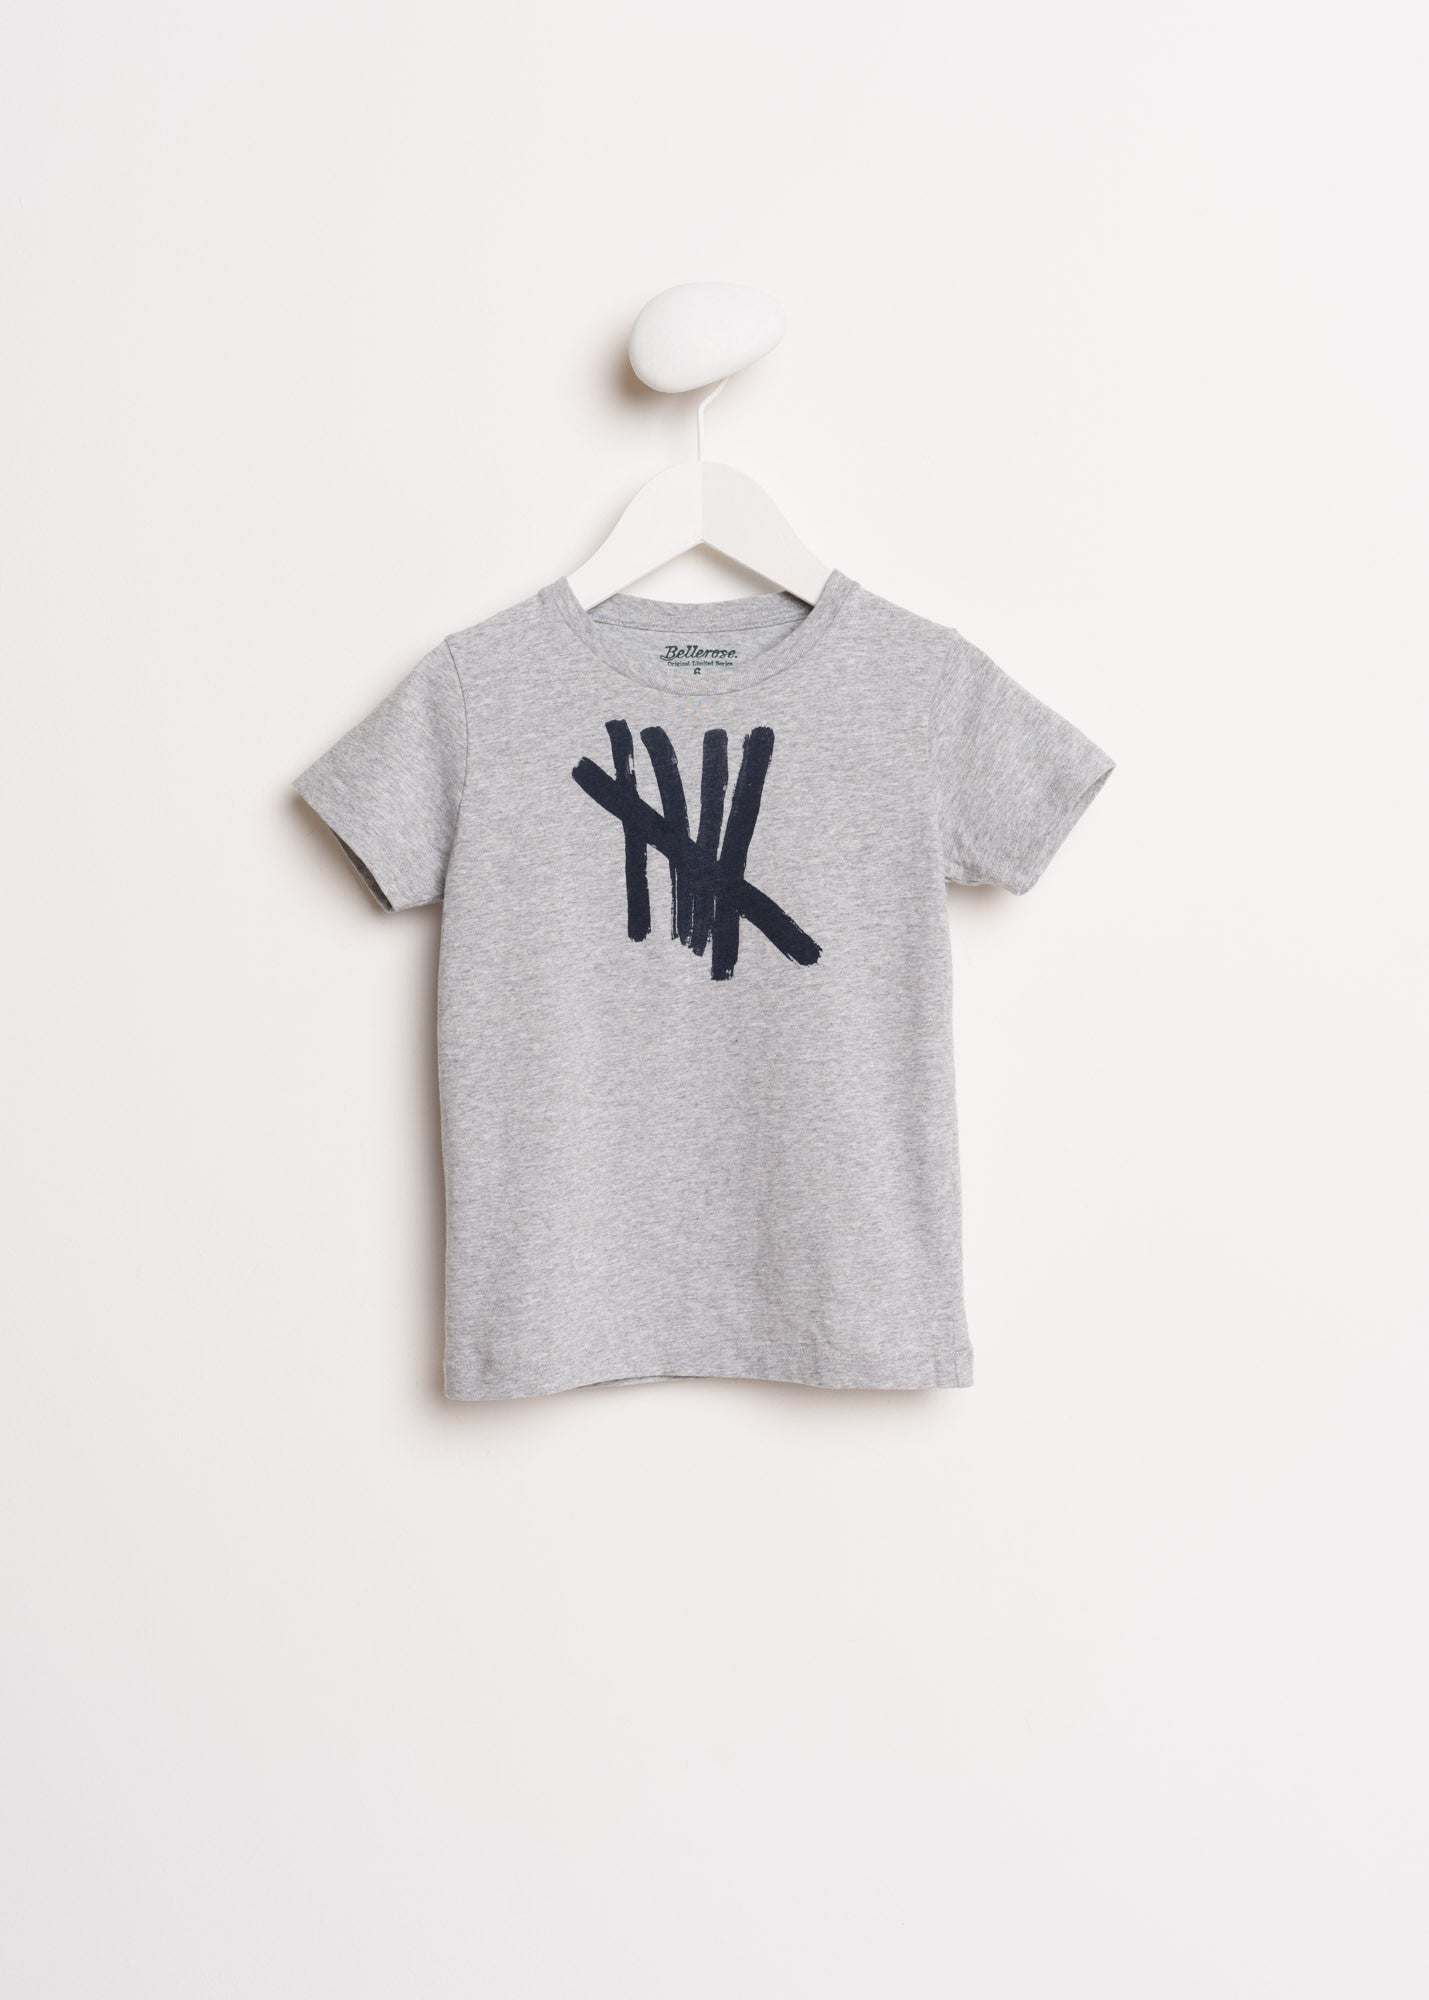 Bellerose Grey Stamp Tee - Ladida